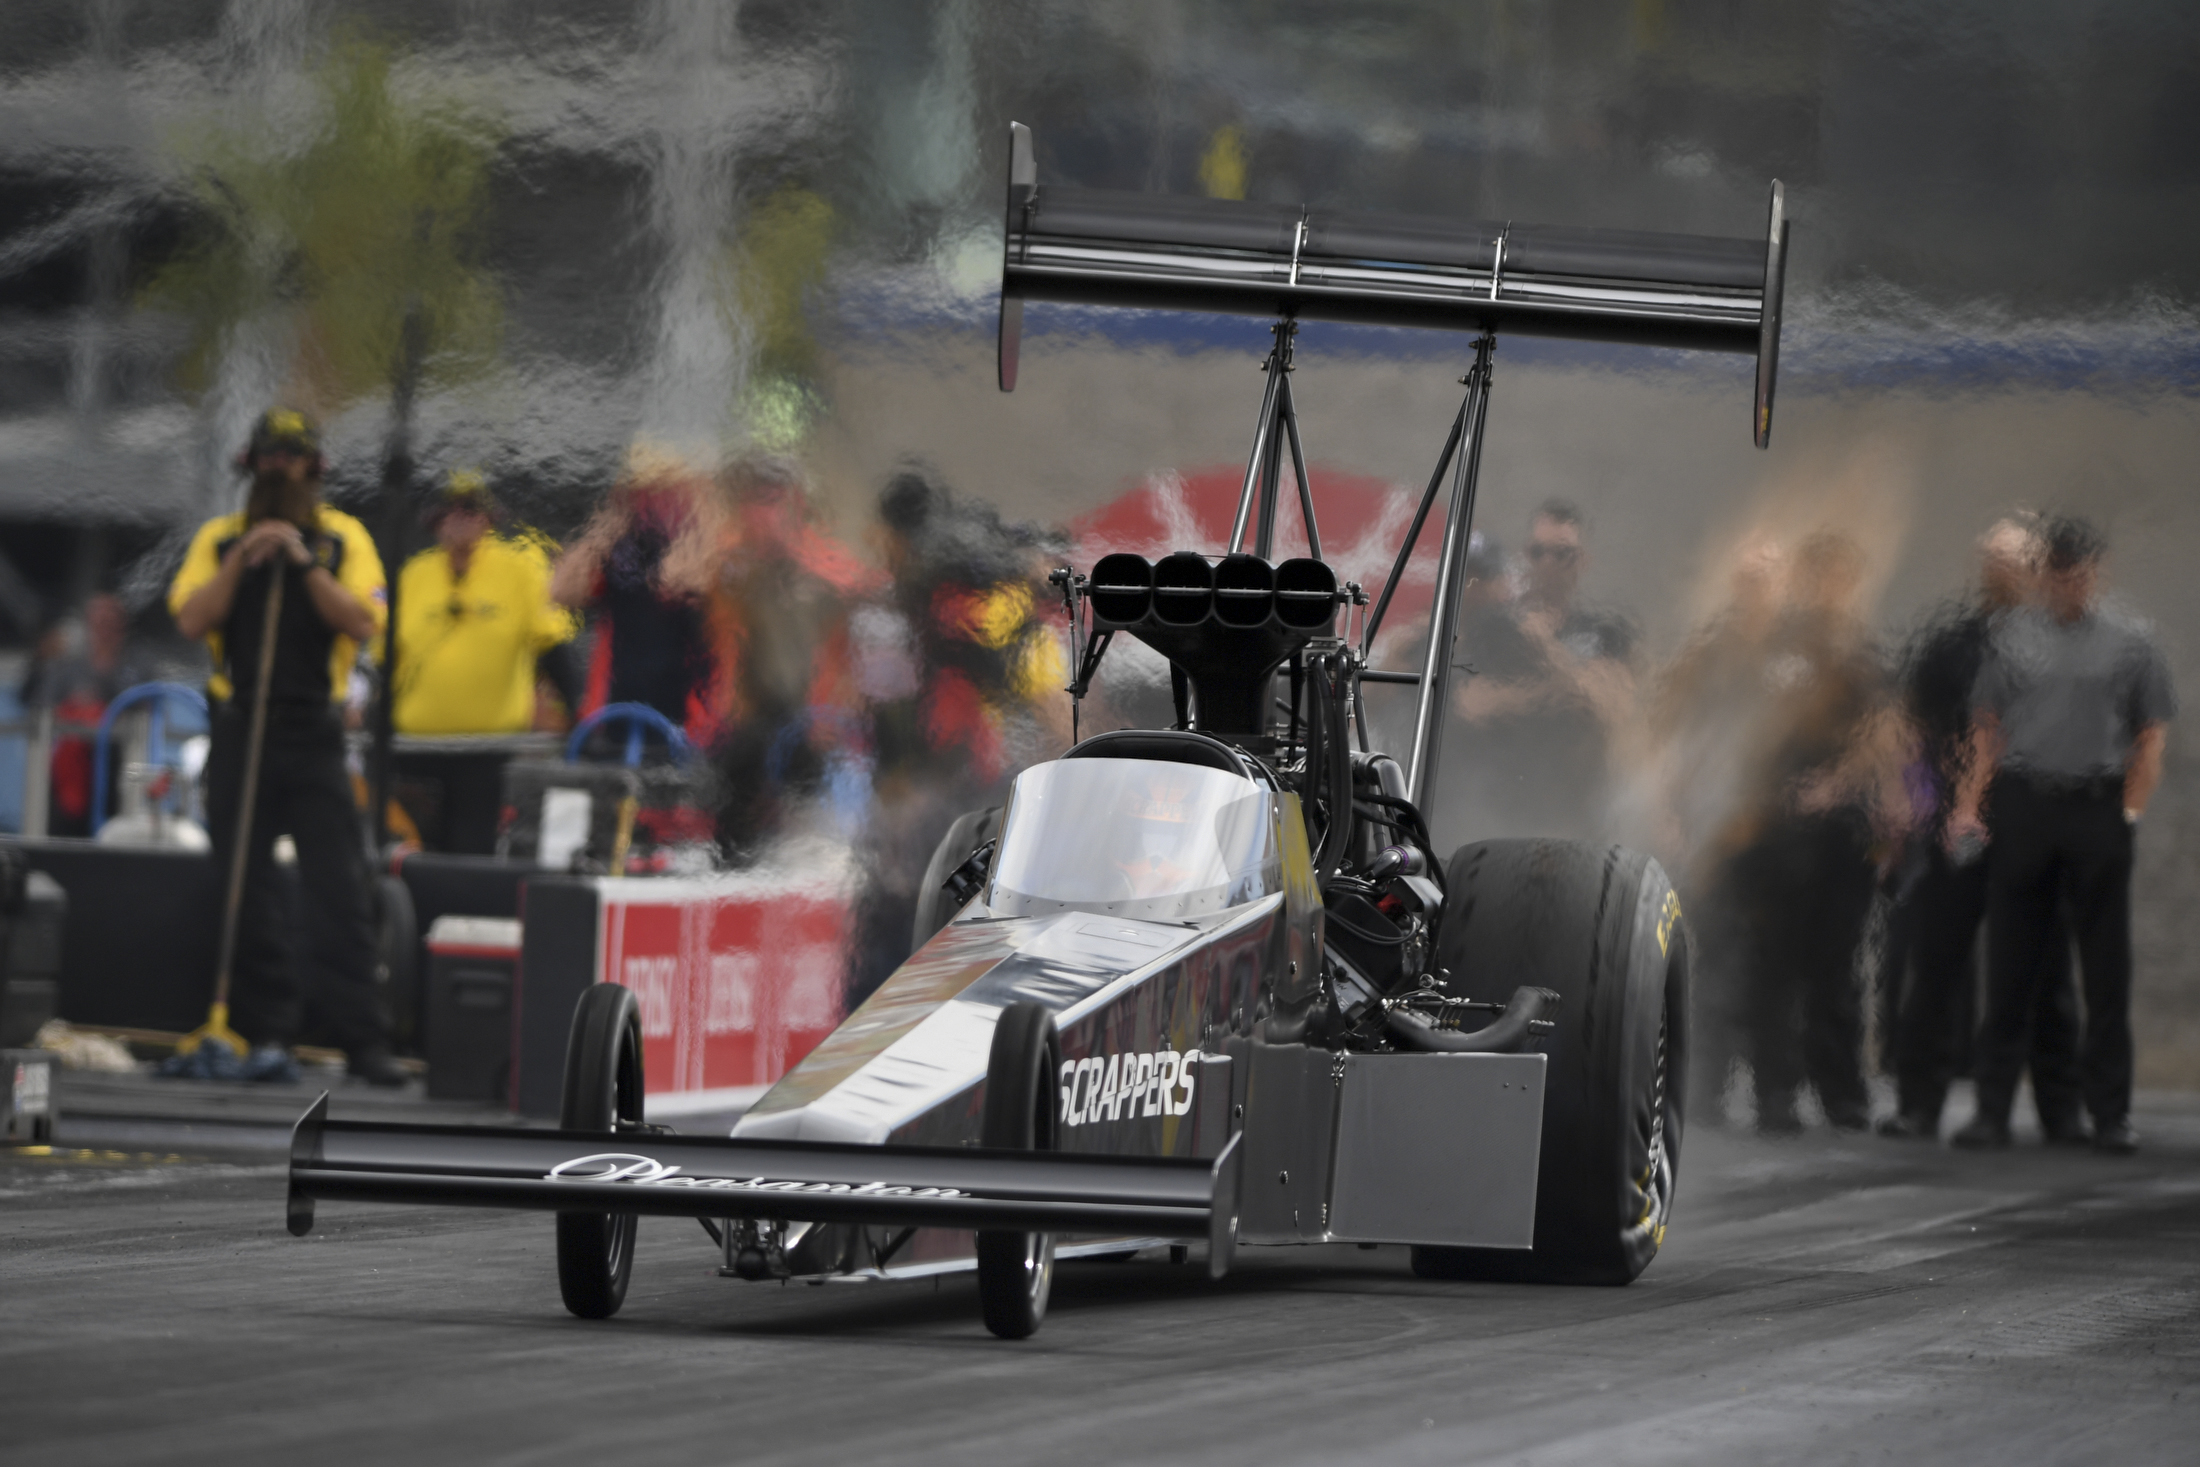 Top Fuel Dragster pilot Mike Salinas racing on Saturday at the DENSO Spark Plugs NHRA Four-Wide Nationals